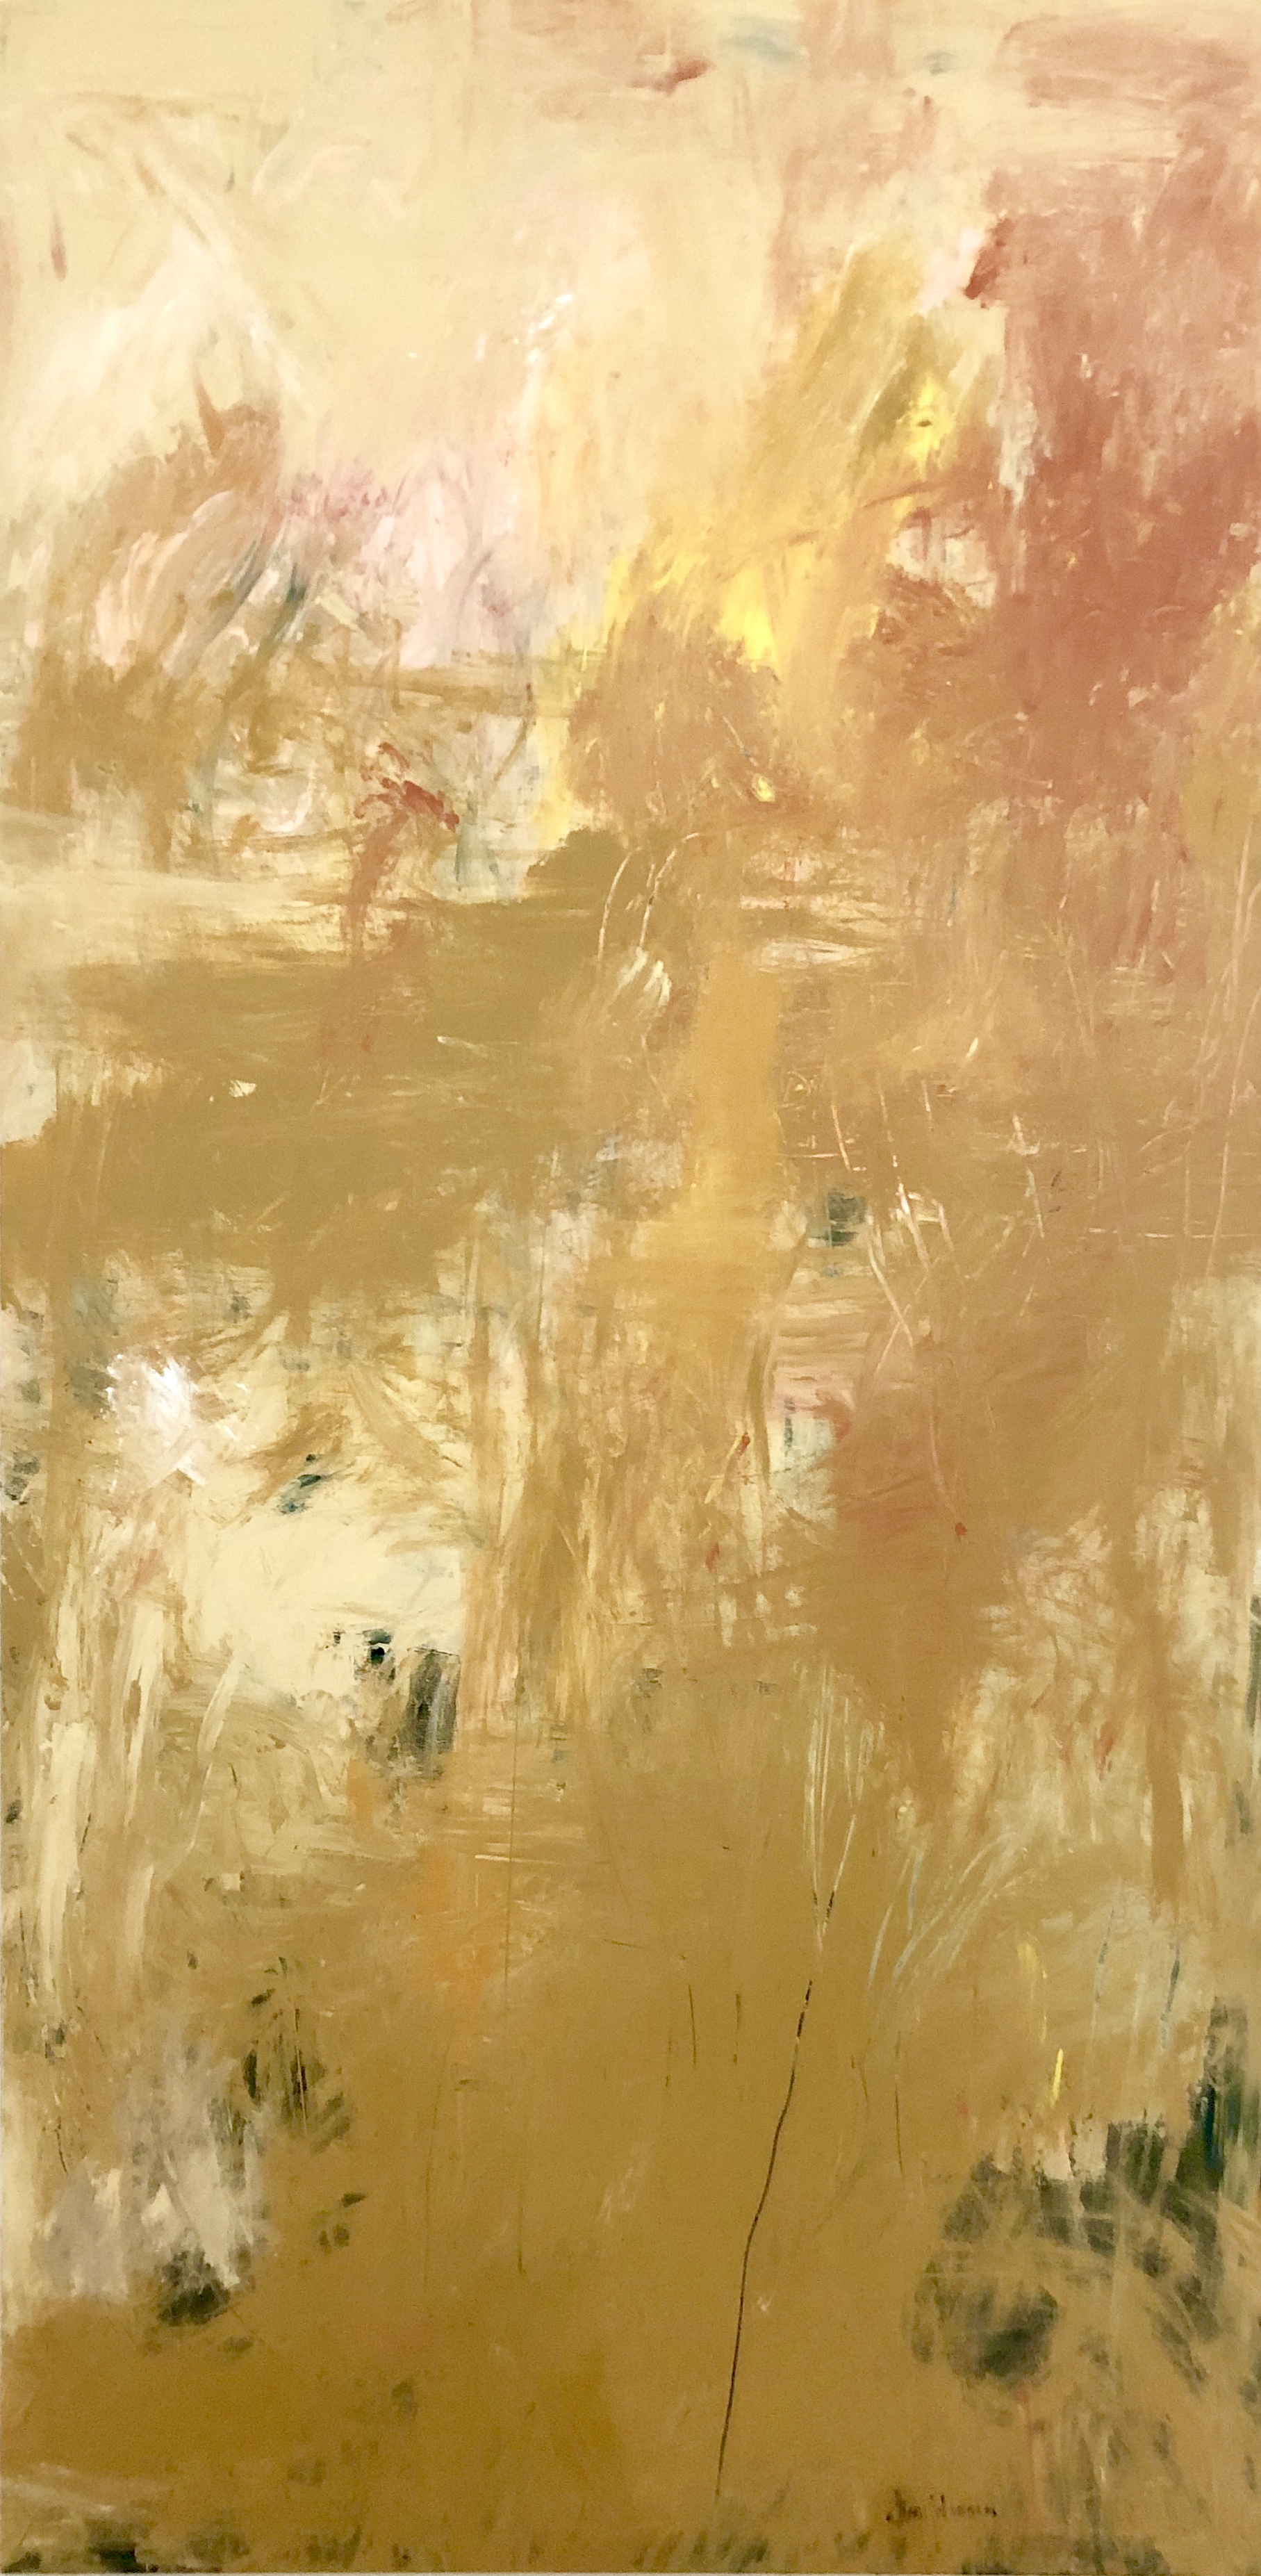 """Ochre Disposition""  Allison Johanson   acrylic on canvas  72"" x 36"""